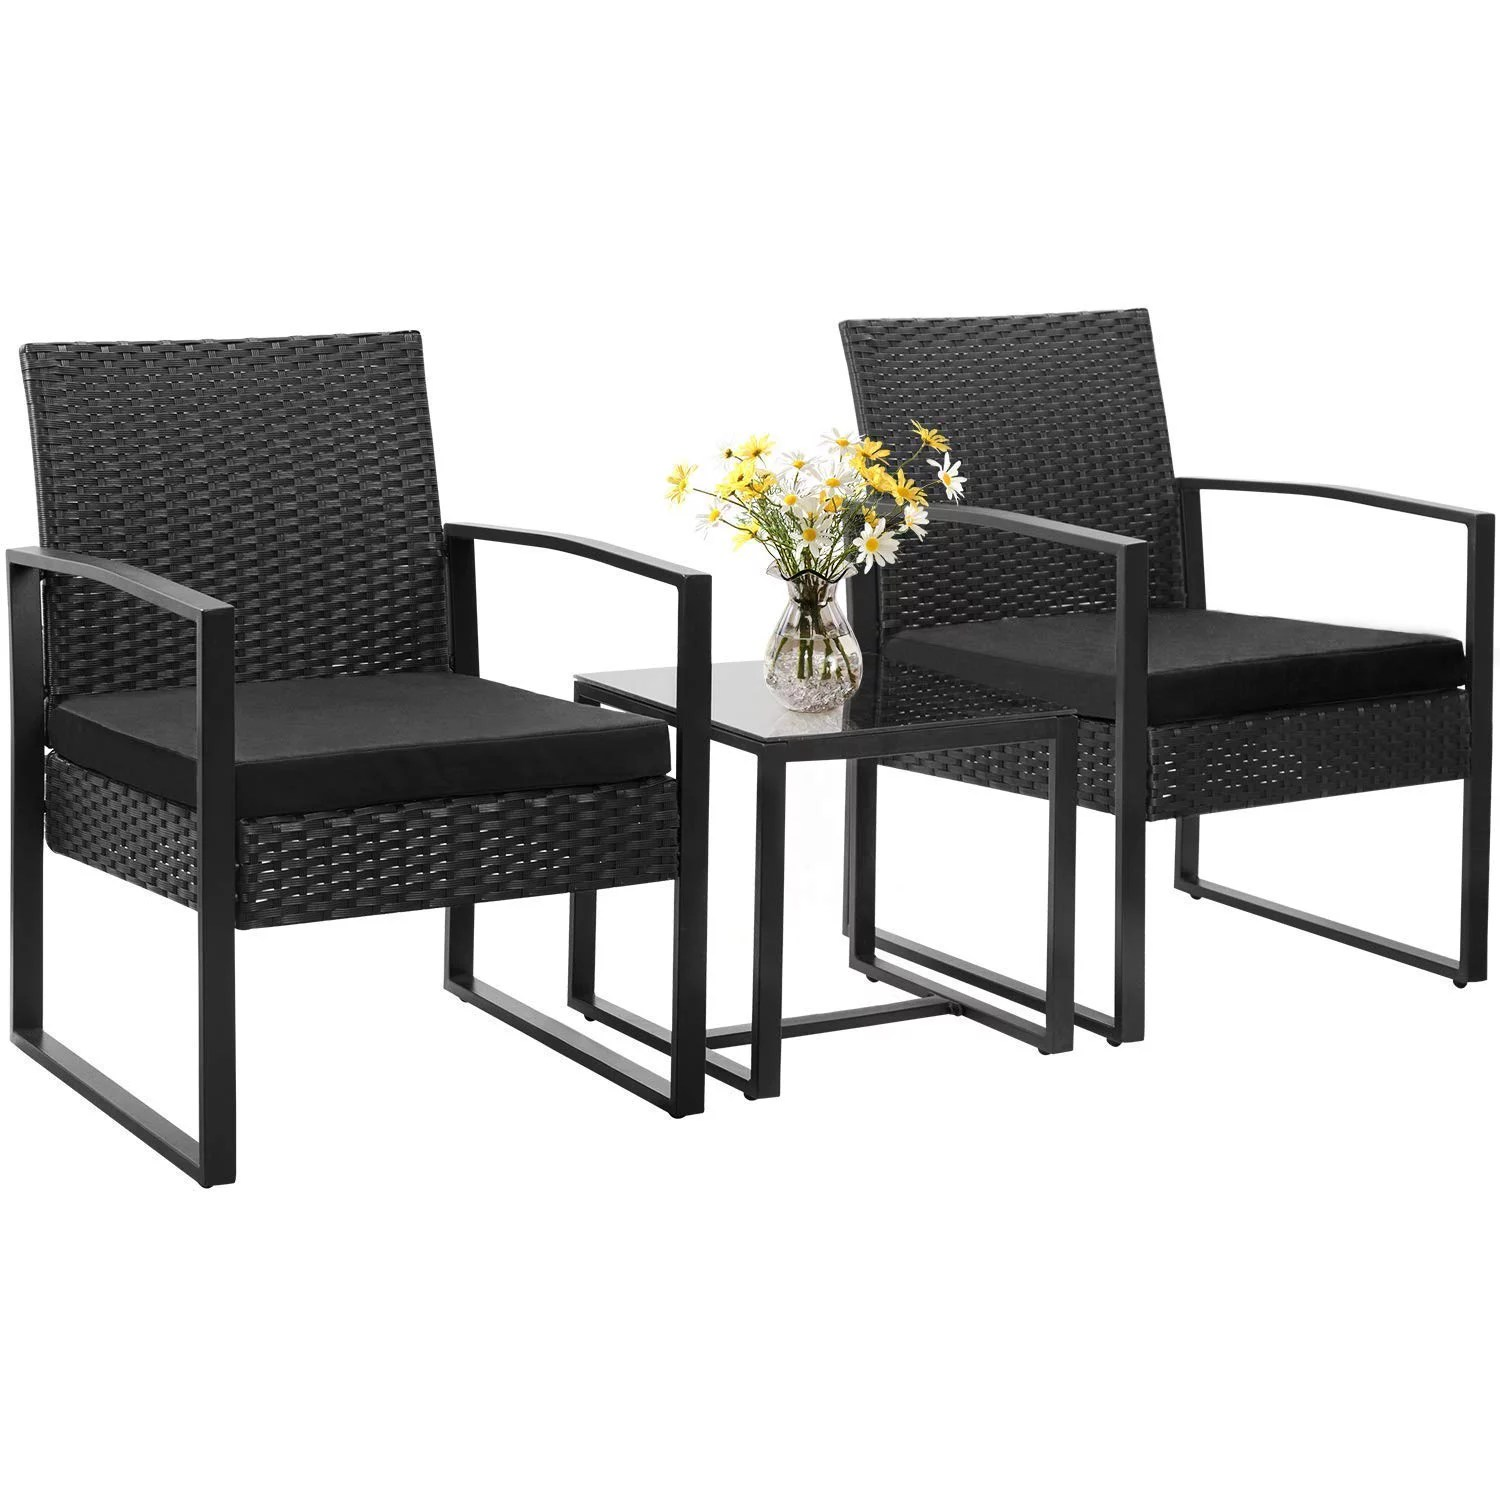 walnew patio furniture cushioned pe rattan bistro chairs set of 2 with table 3 piece walmart com